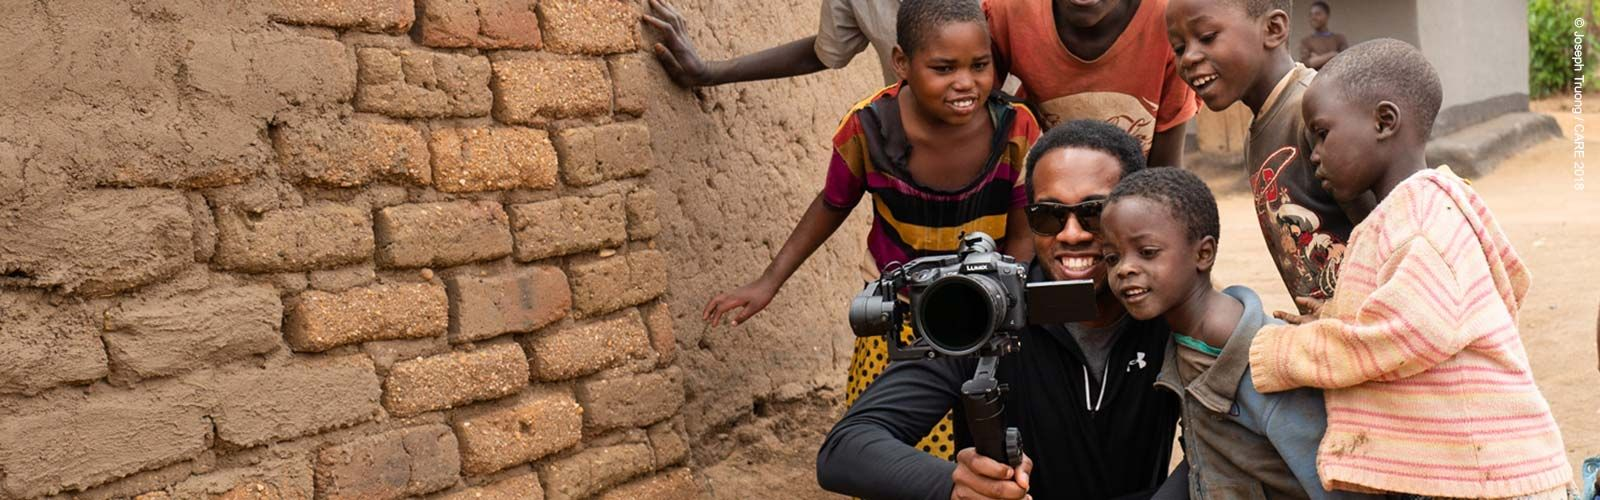 Group of children looking at video camera in Malawi